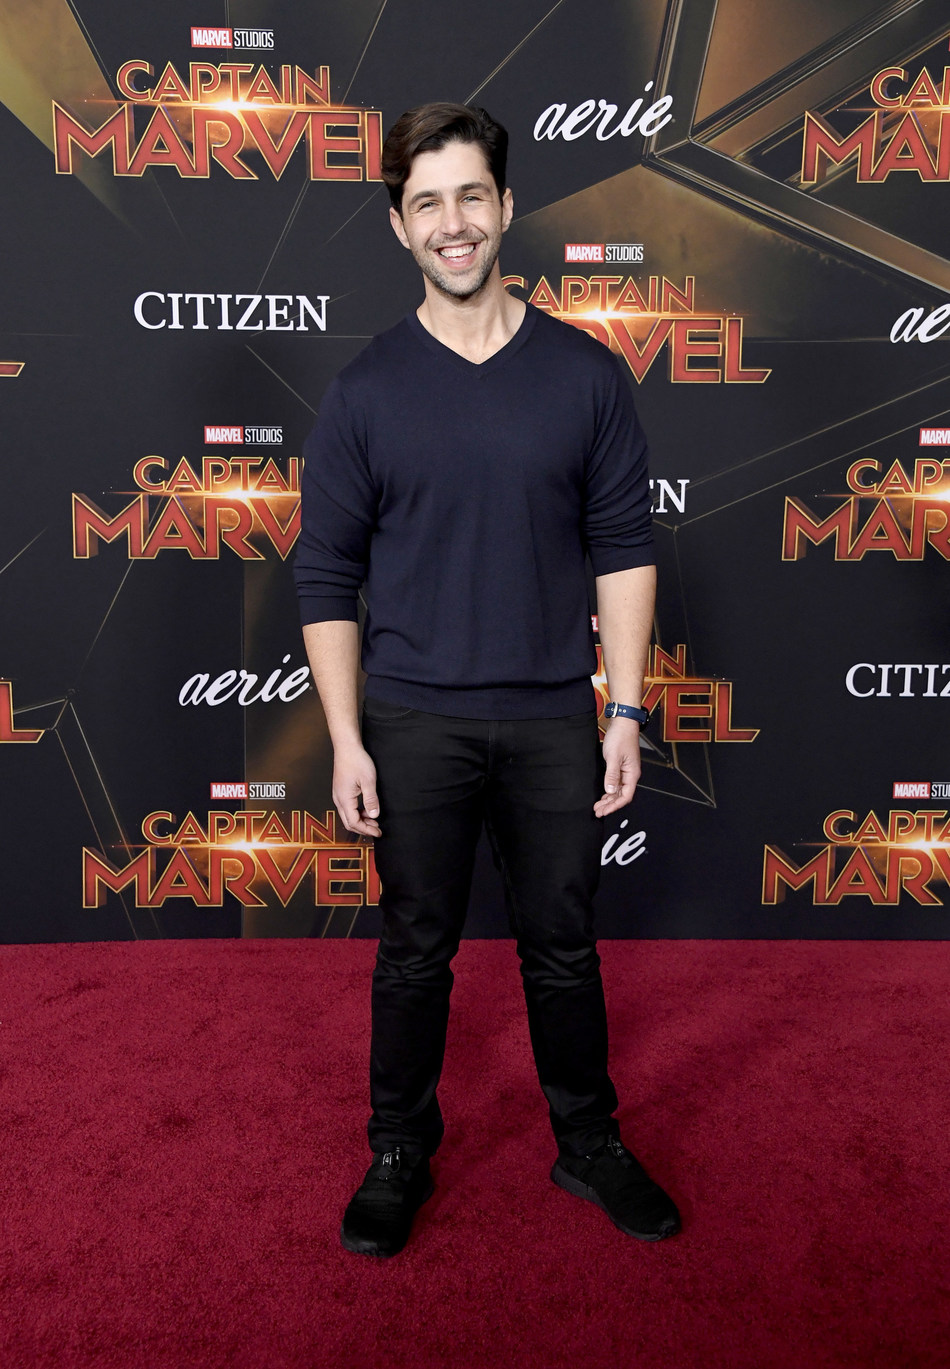 Citizen Marvel Ambassador Josh Peck at Captain Marvel Premiere (Credit: Getty).